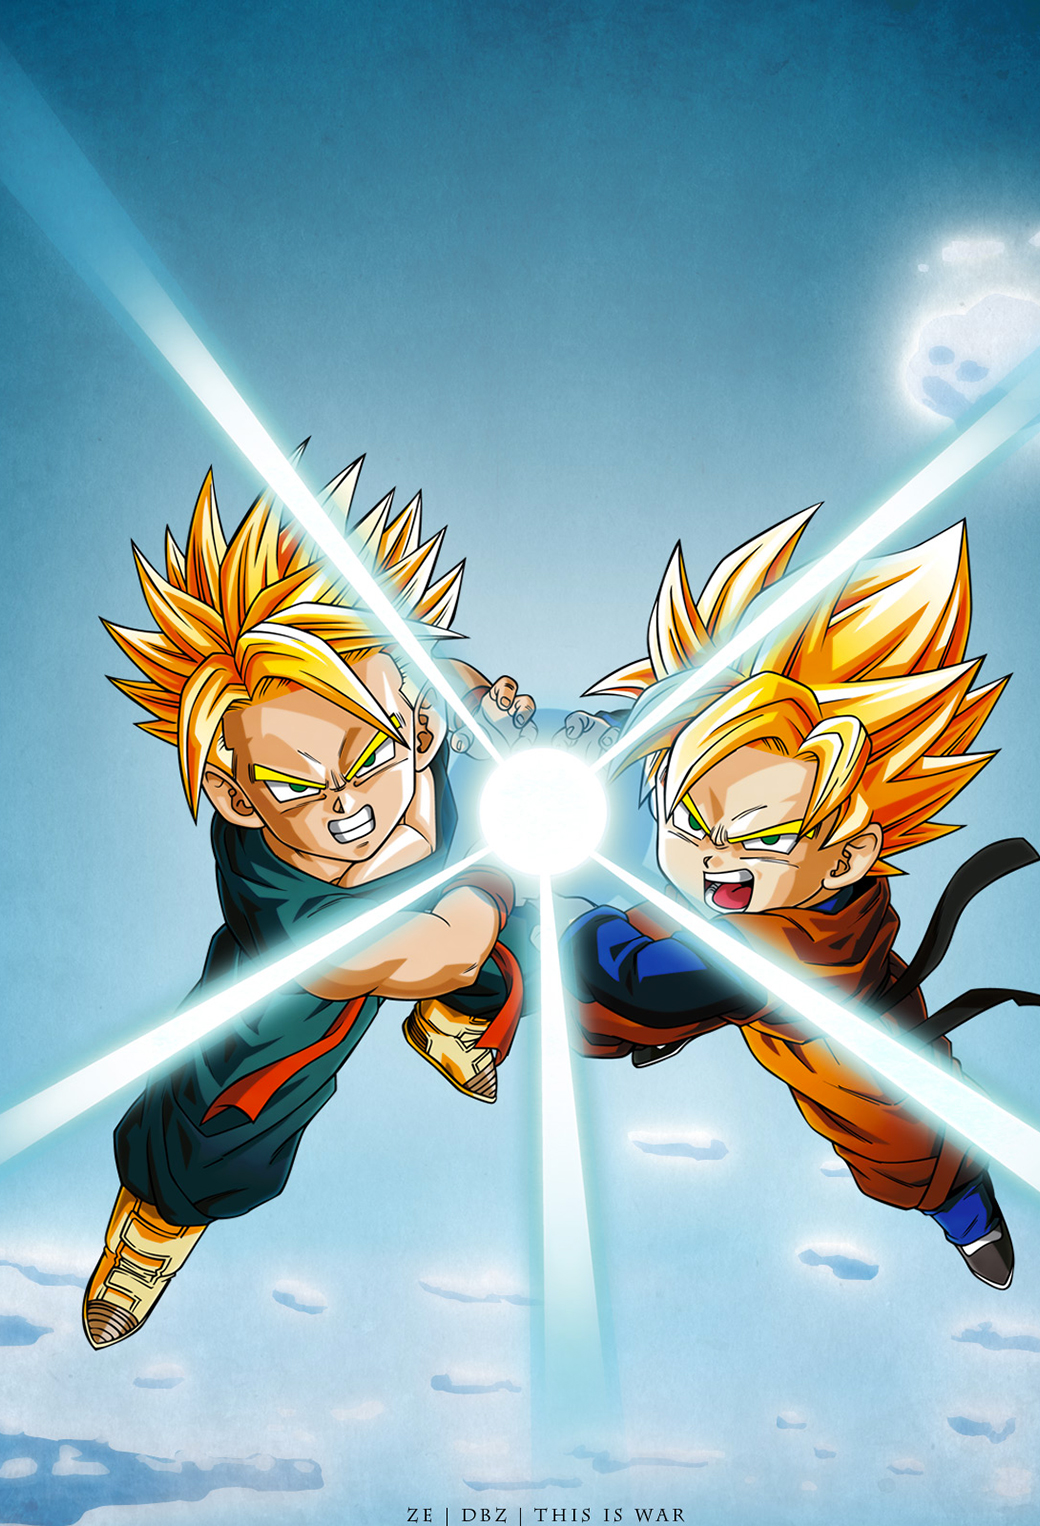 Dragon Ball Z Iphone Parallax Wallpaper For Iphone 11 Pro Max X 8 7 6 Free Download On 3wallpapers